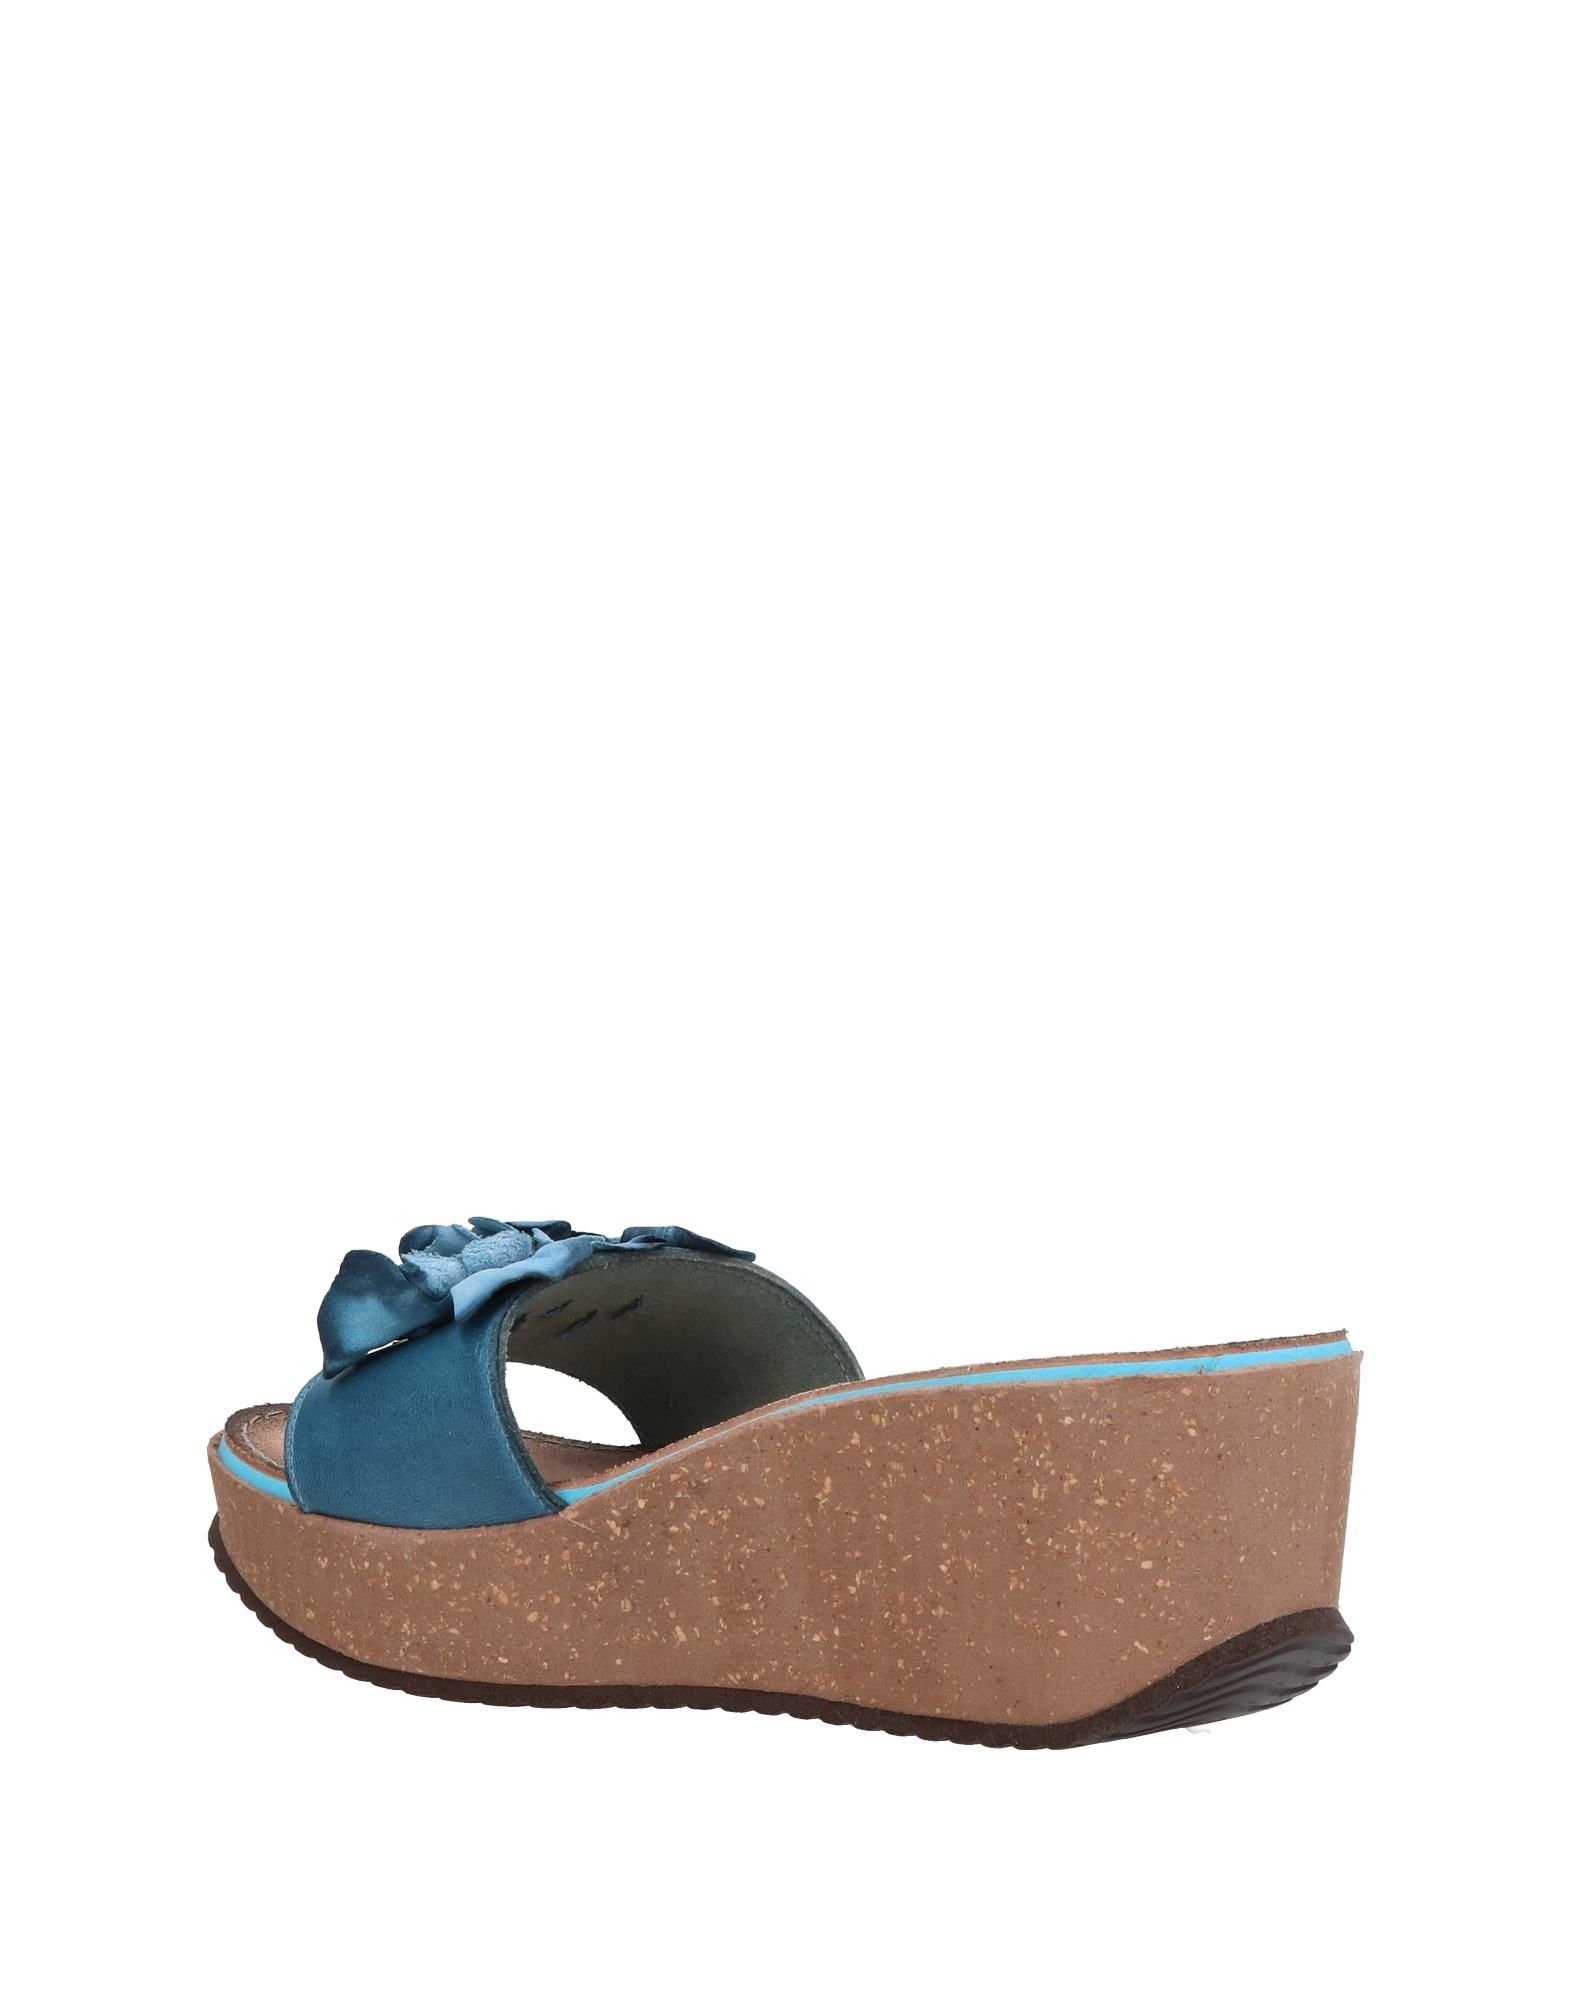 Chaussures - Sandales Guerrucci wiZwWLiL